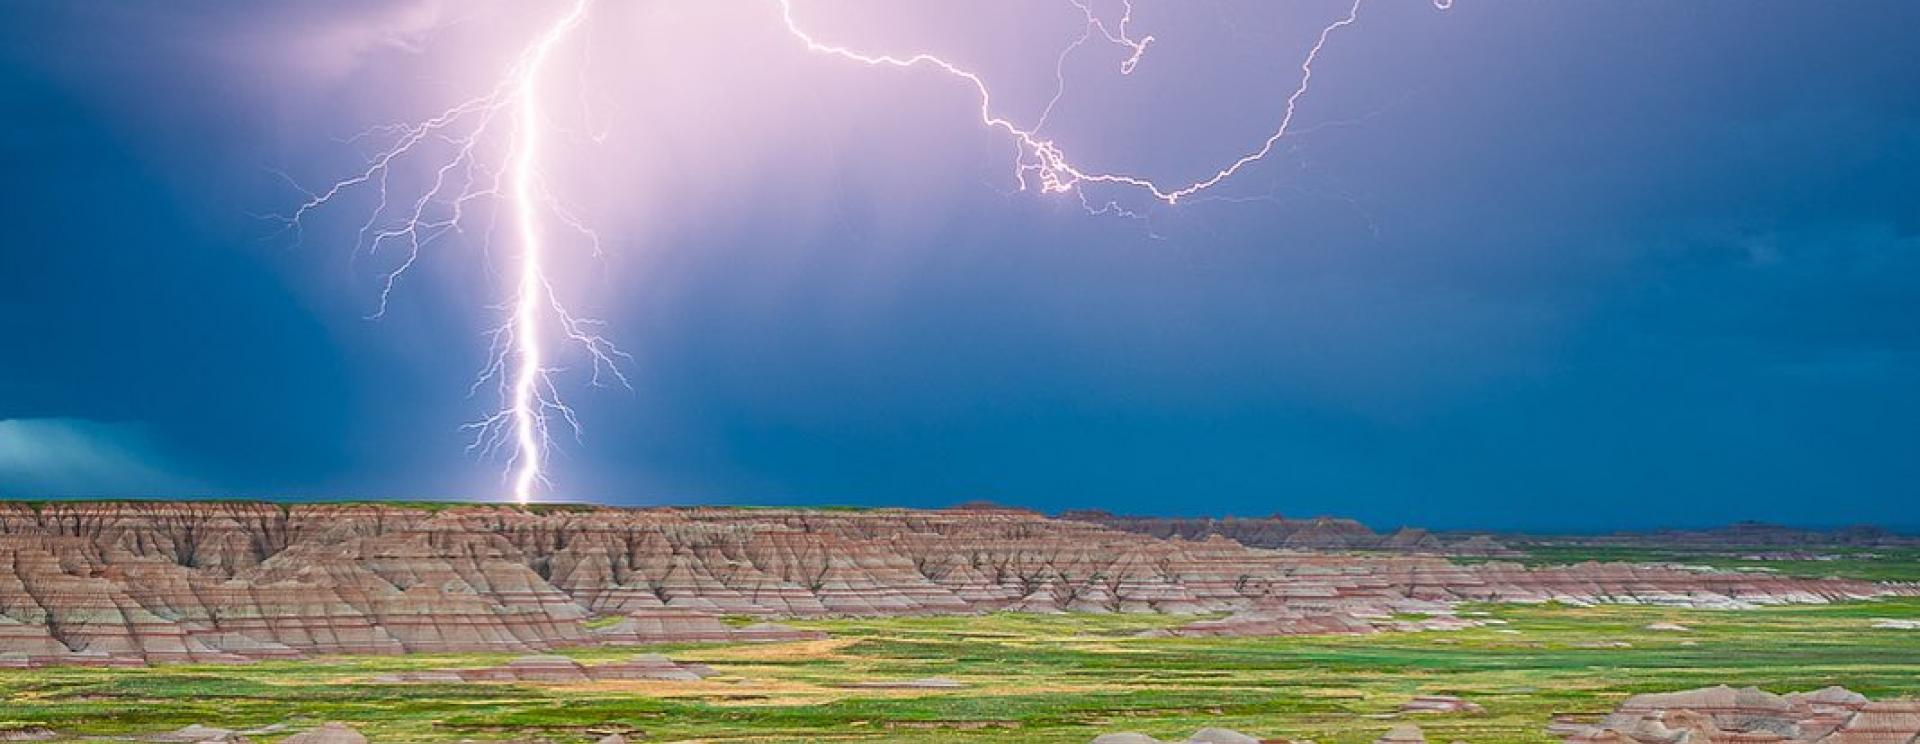 The 5 Most Remarkable Photos of the Black Hills and Badlands in July 2020